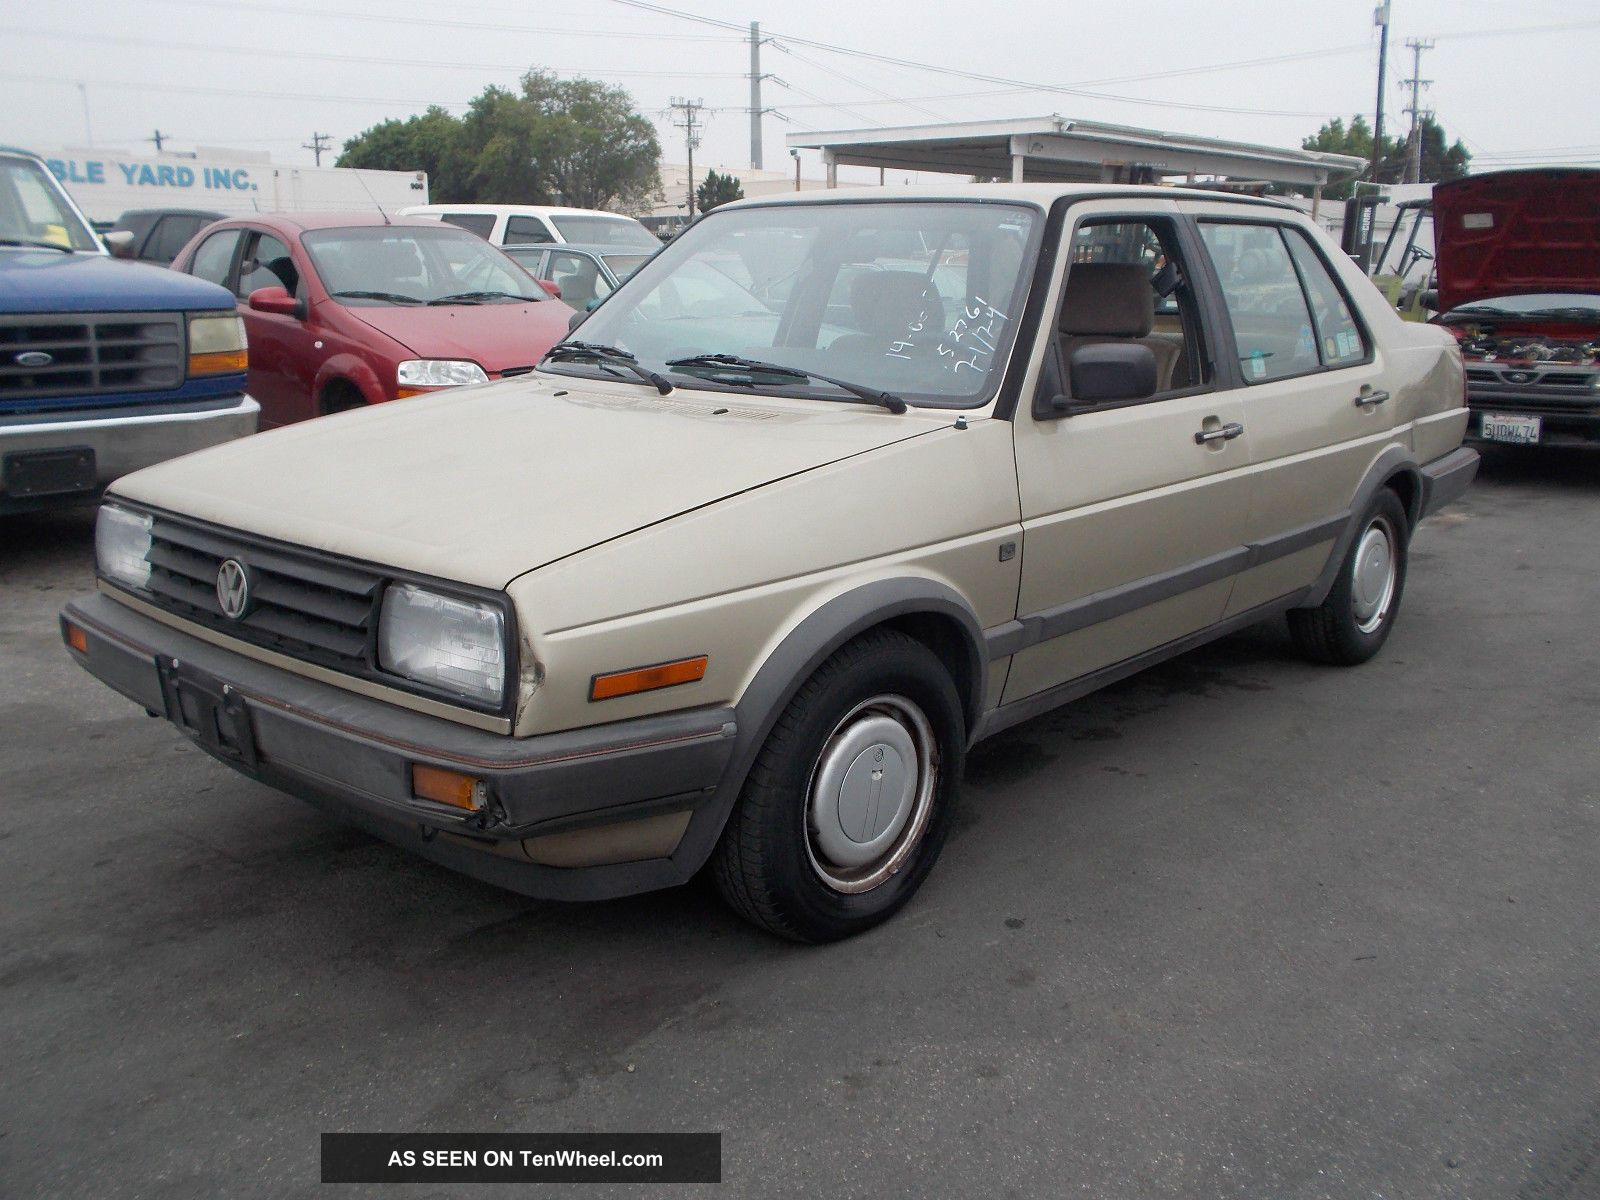 1989 Volkswagen Jetta Jetta photo